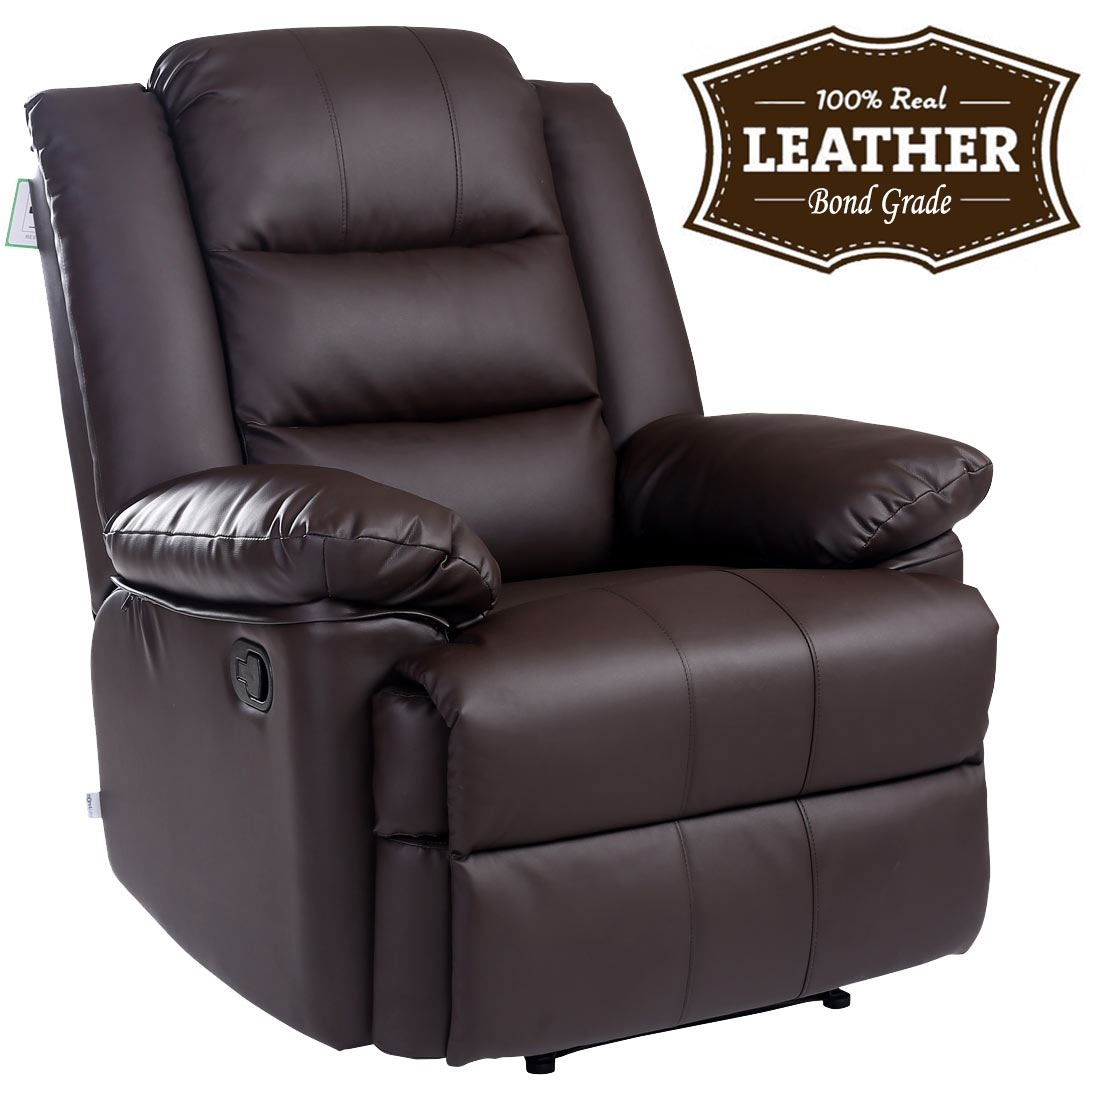 Loxley Leather Recliner Armchair Sofa Home Lounge Chair Reclining In Gaming Sofa Chairs (Image 10 of 15)